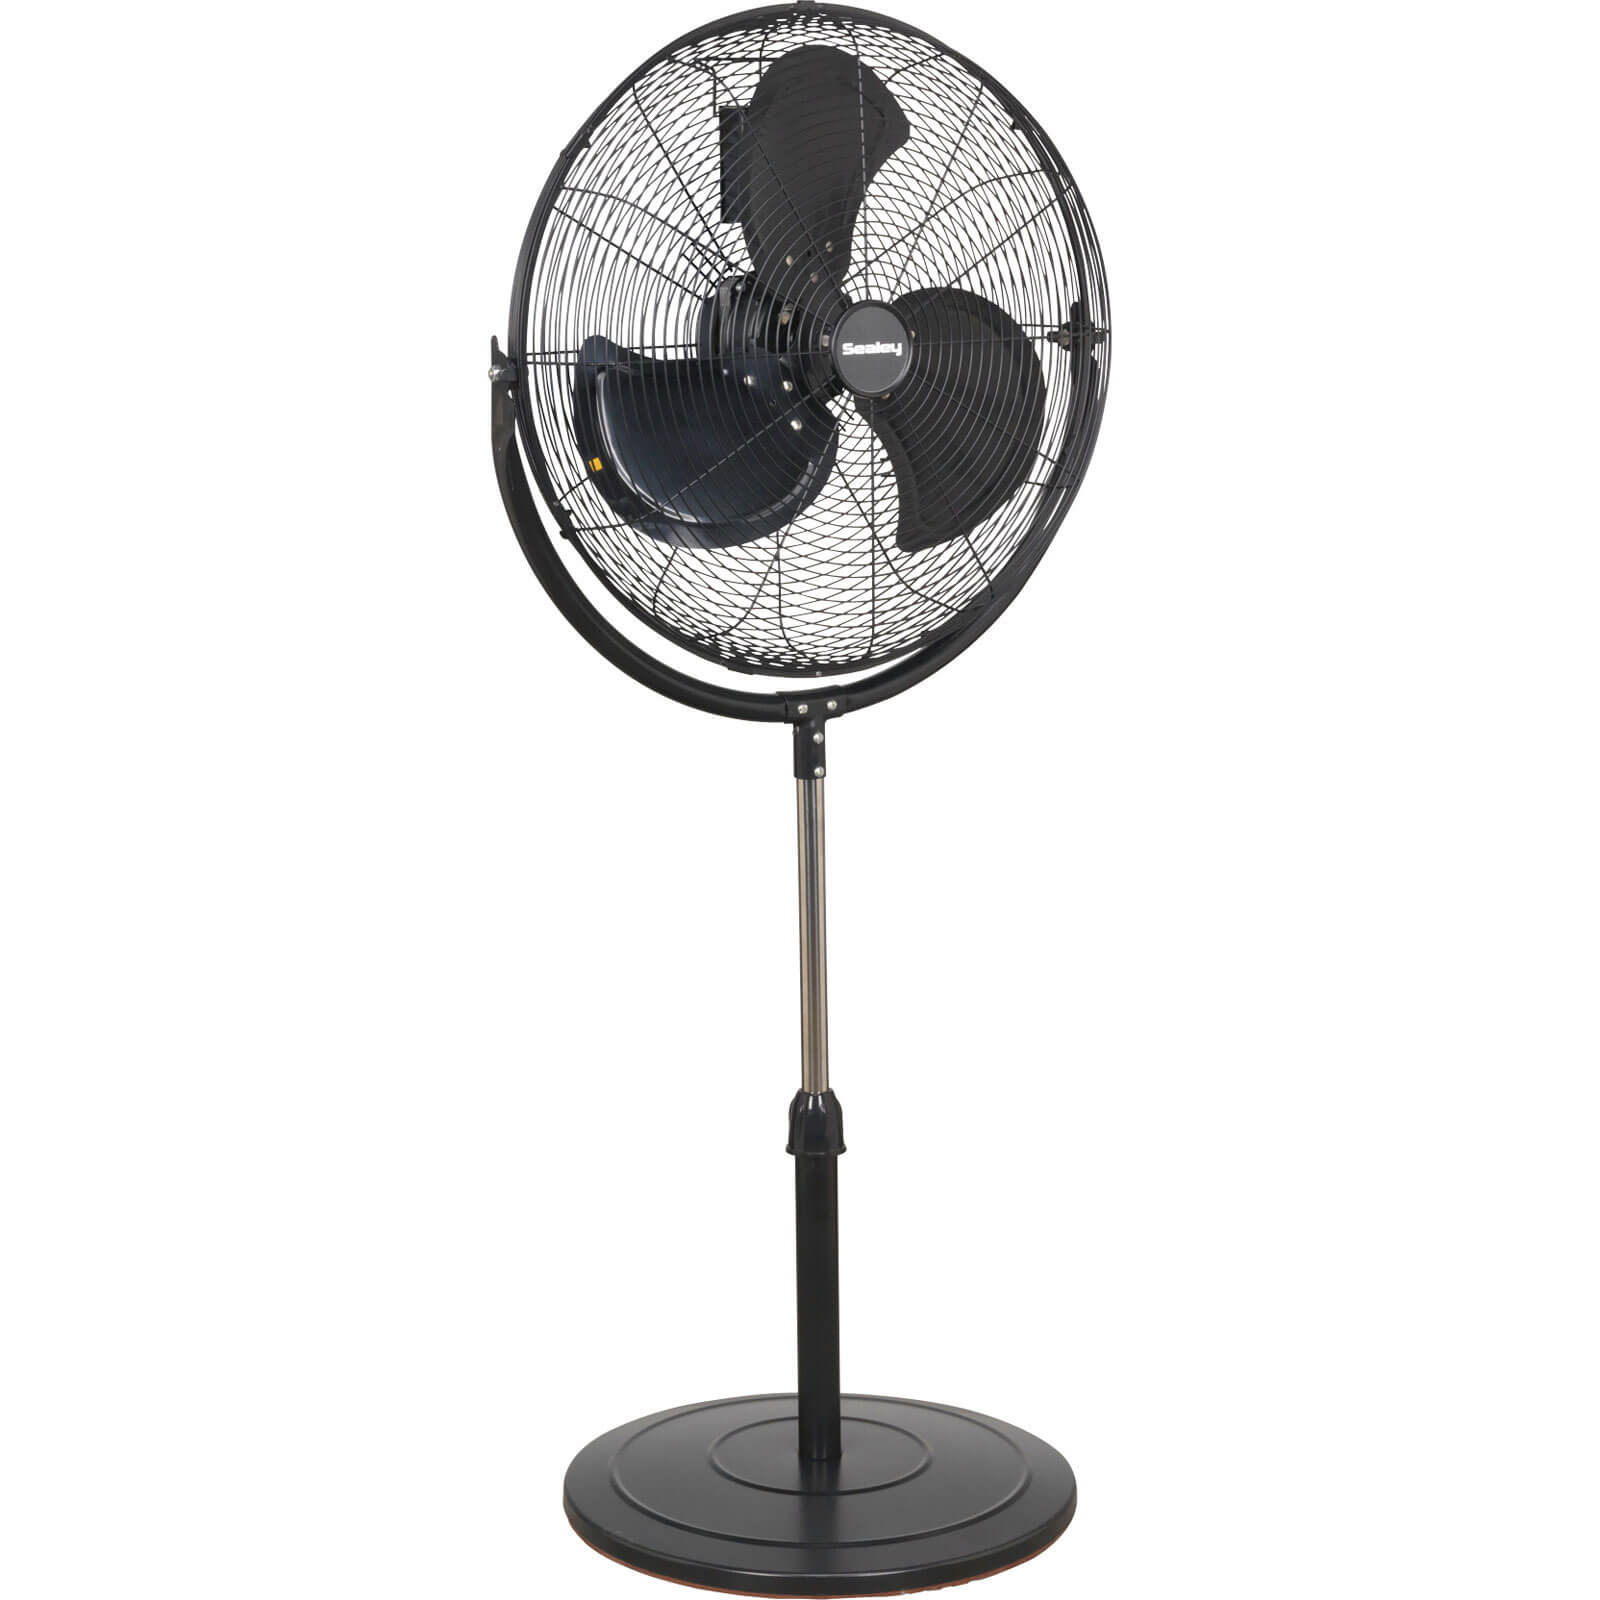 High Velocity Industrial Fans : Sealey industrial high velocity pedestal fan